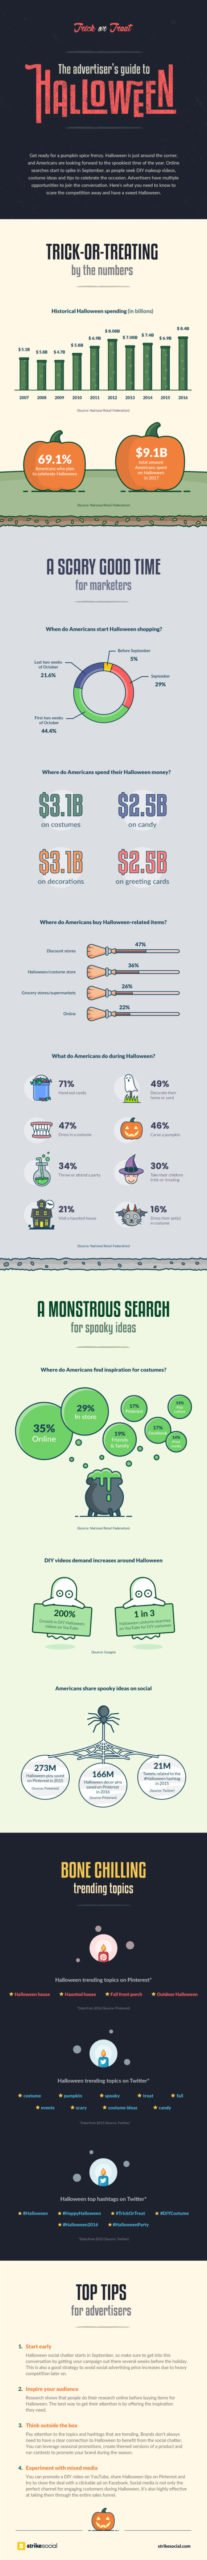 the opportunities of halloween marketing infographic